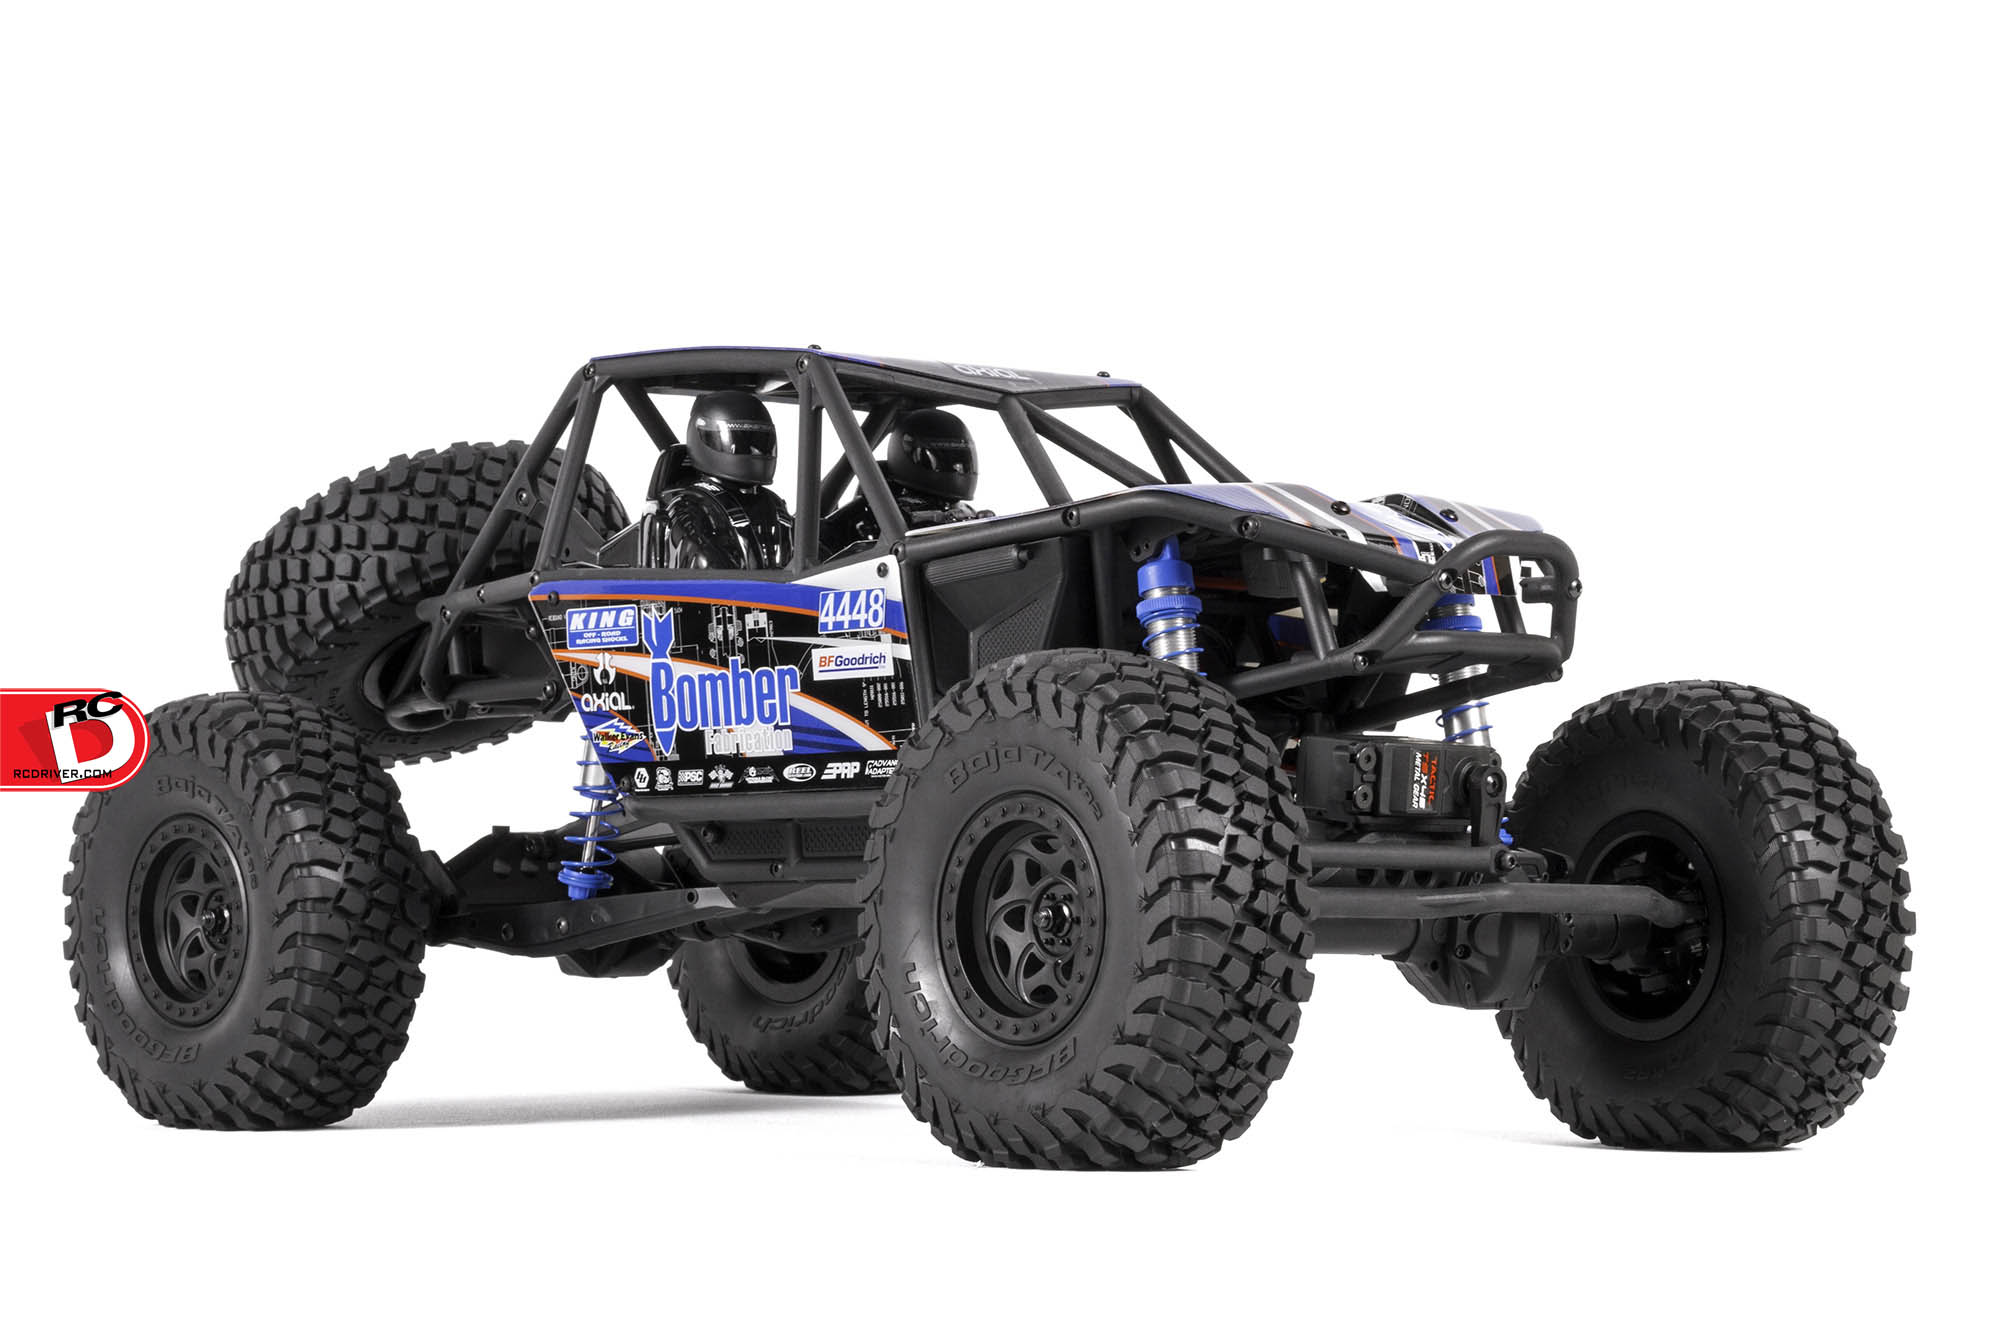 Axial - RR10 Bomber_3 copy